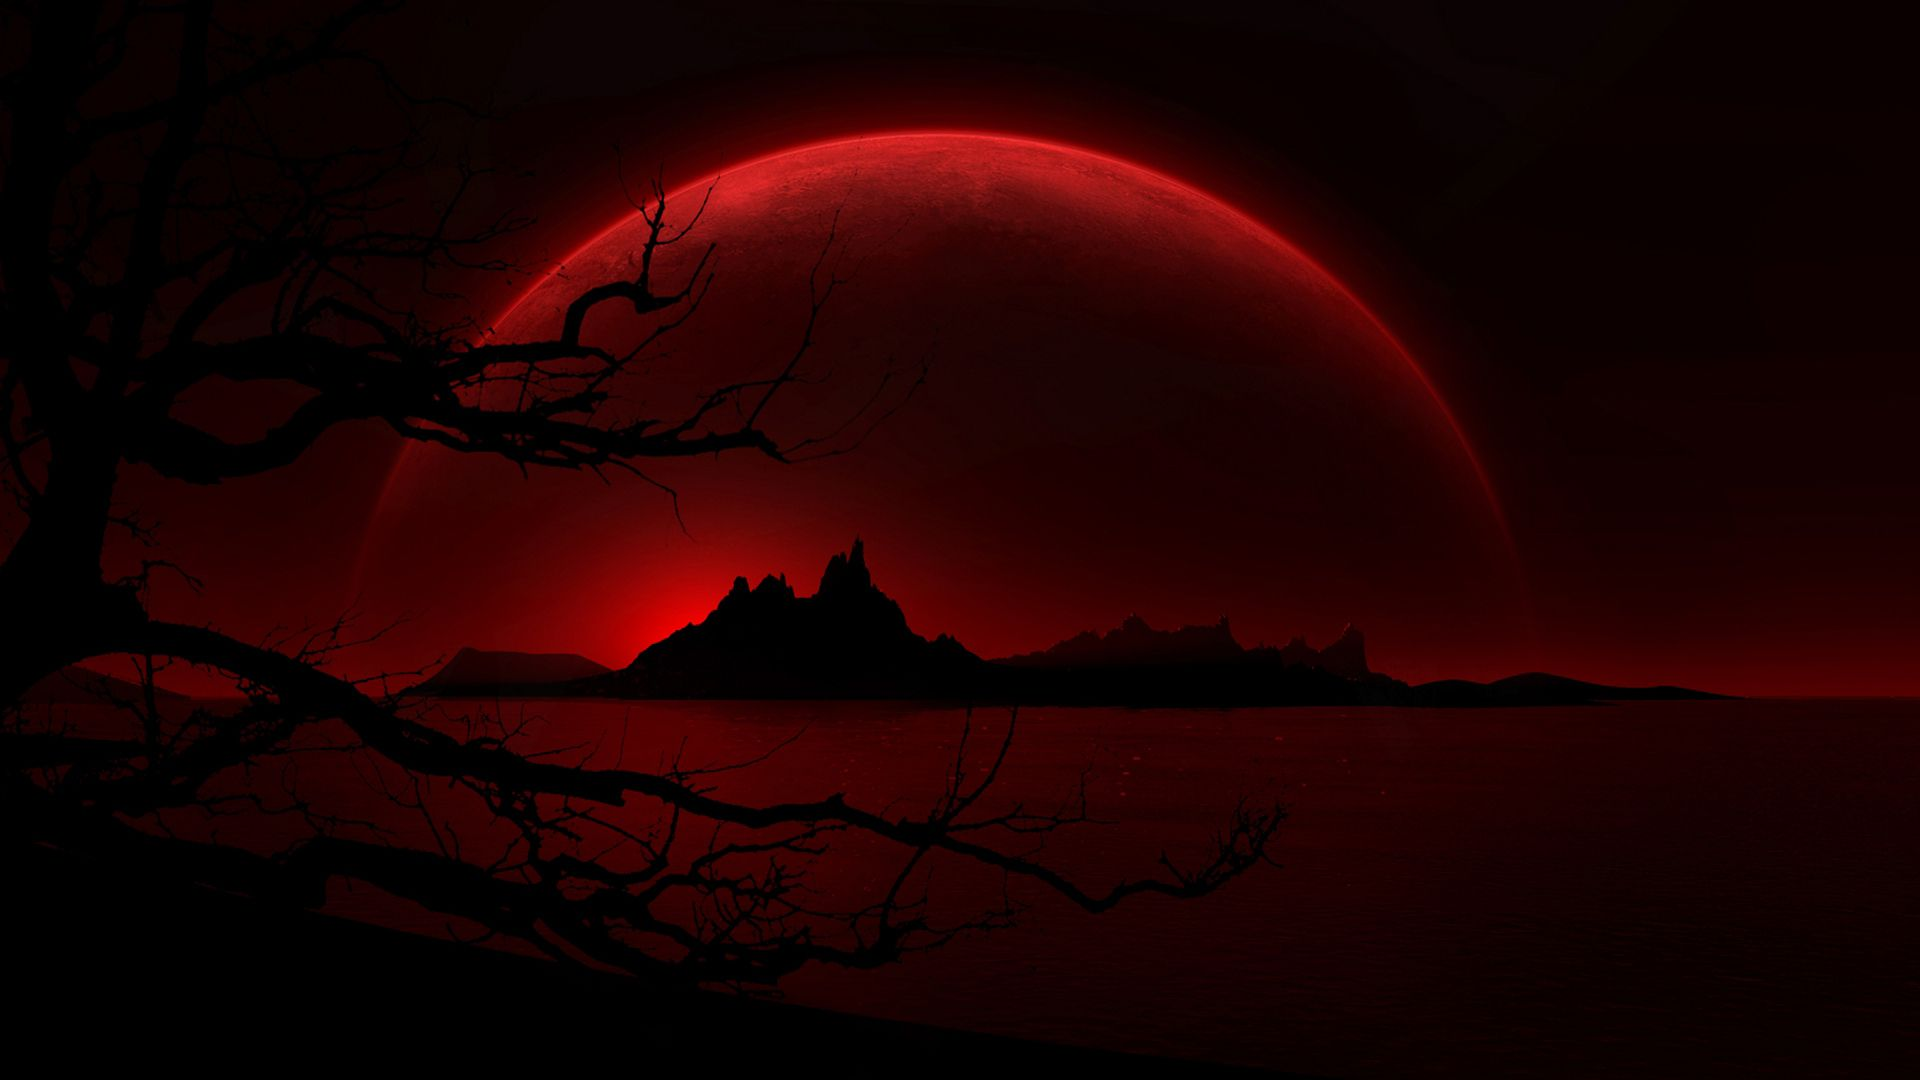 Love Wallpaper With Blood : blood-red-moon-hd-wallpaper-341068.jpg (1920x1080) ? Mystery Anime Wallpapers ? Pinterest ...